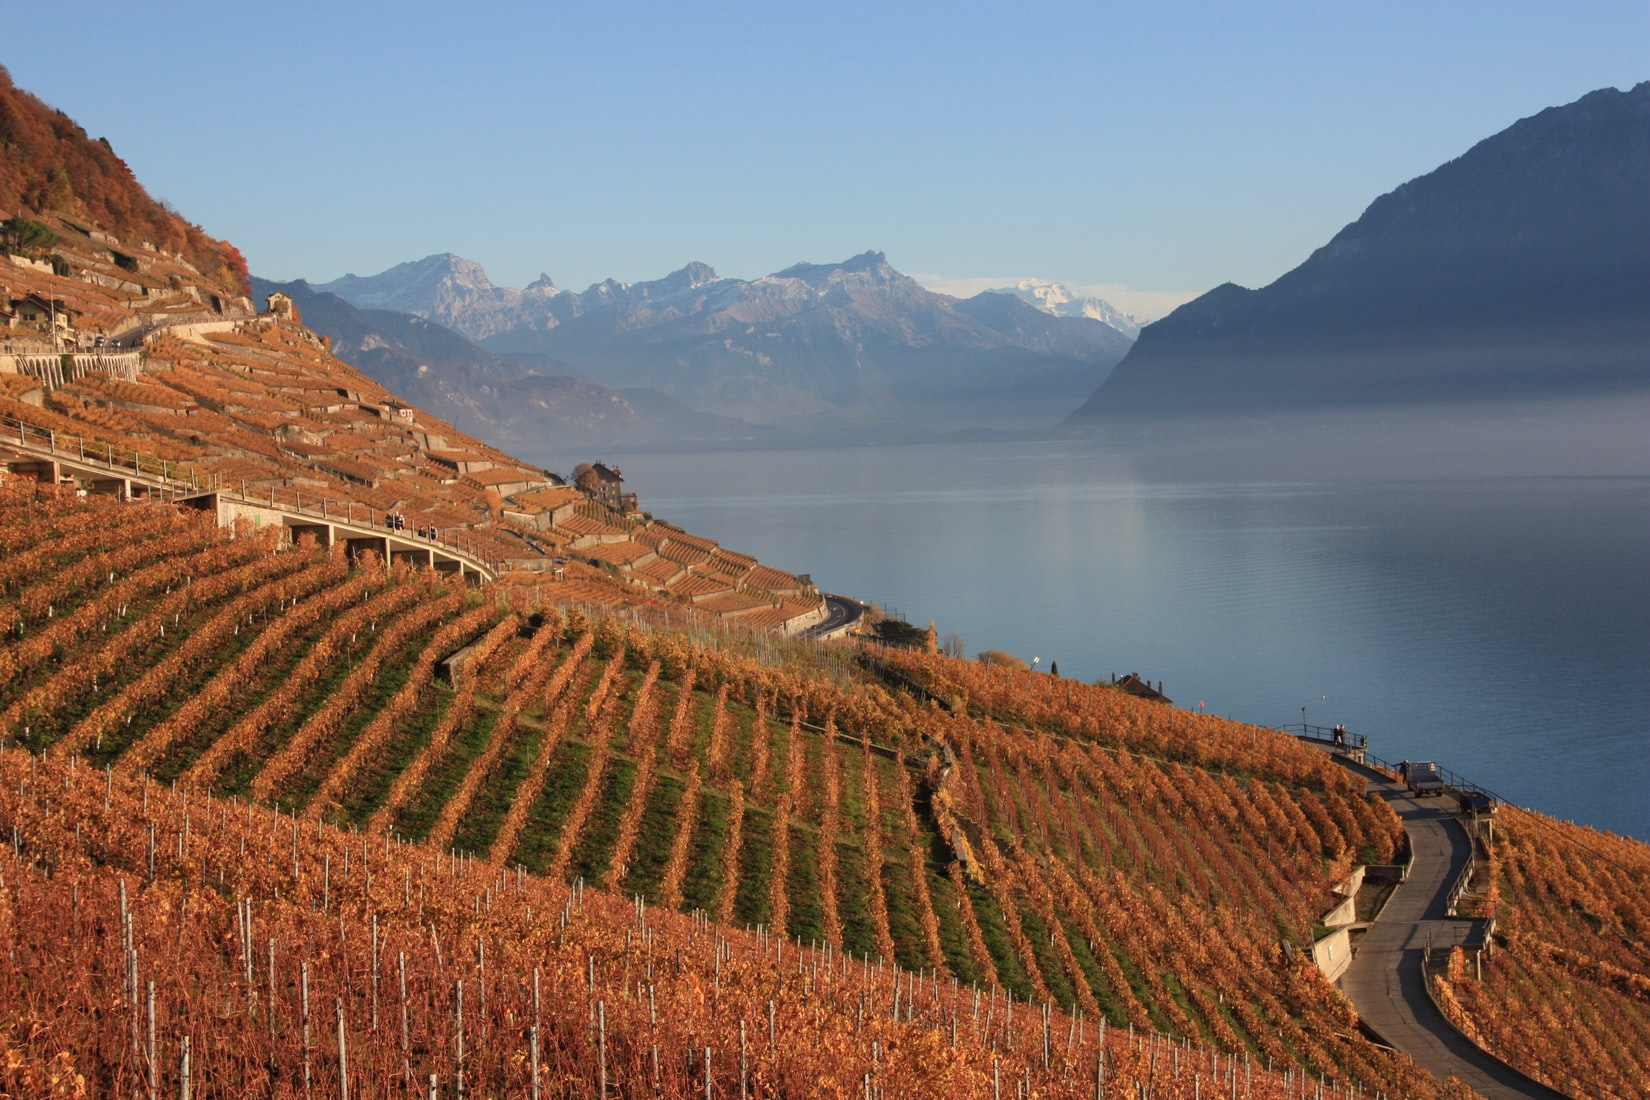 German Winemakers See Boon in Climate Change